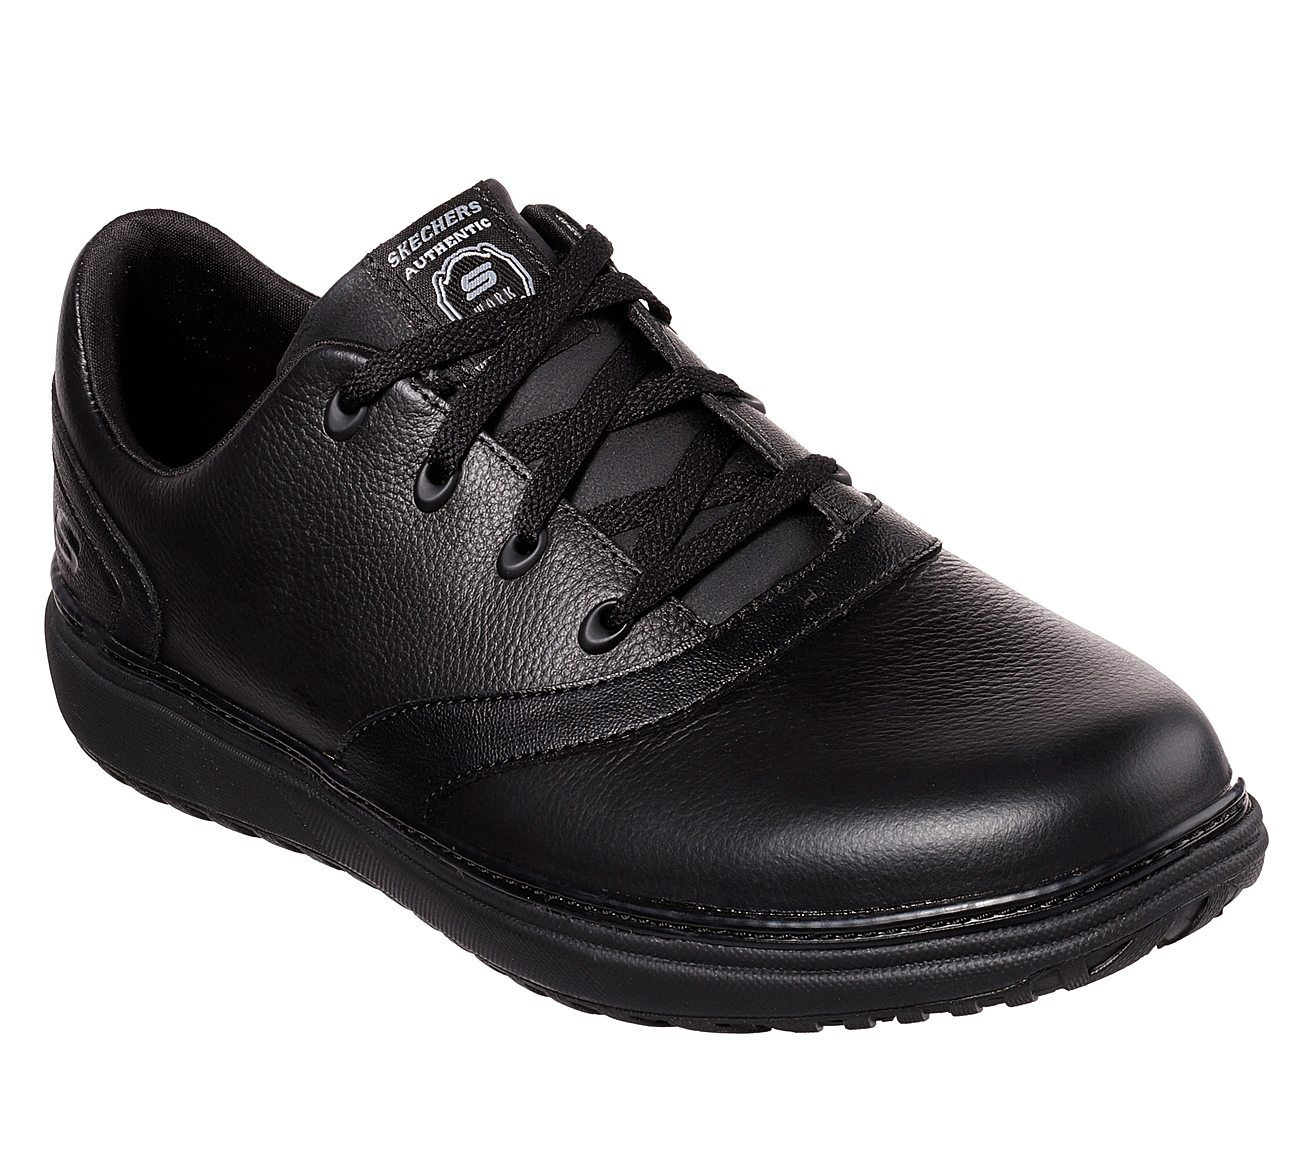 39791b77ac5 Buy SKECHERS Work Relaxed Fit  Mohall SR Work Shoes only  82.00